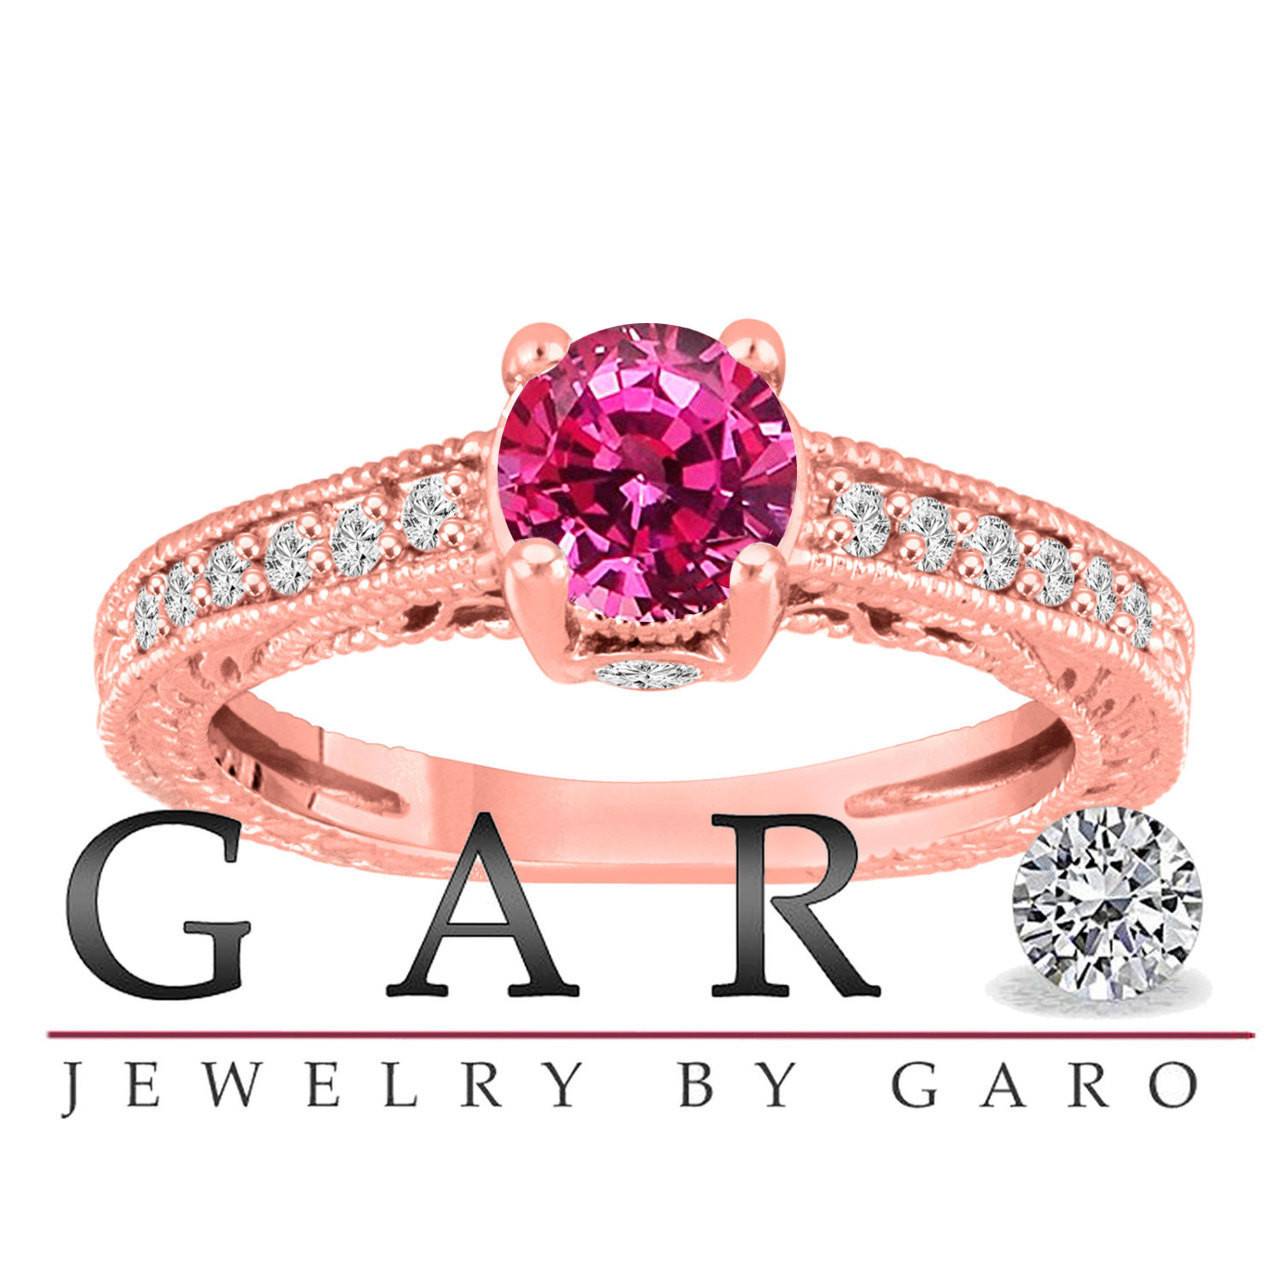 0.70 Carat Pink Sapphire Engagement Ring, 14K Rose Gold Wedding Ring ...